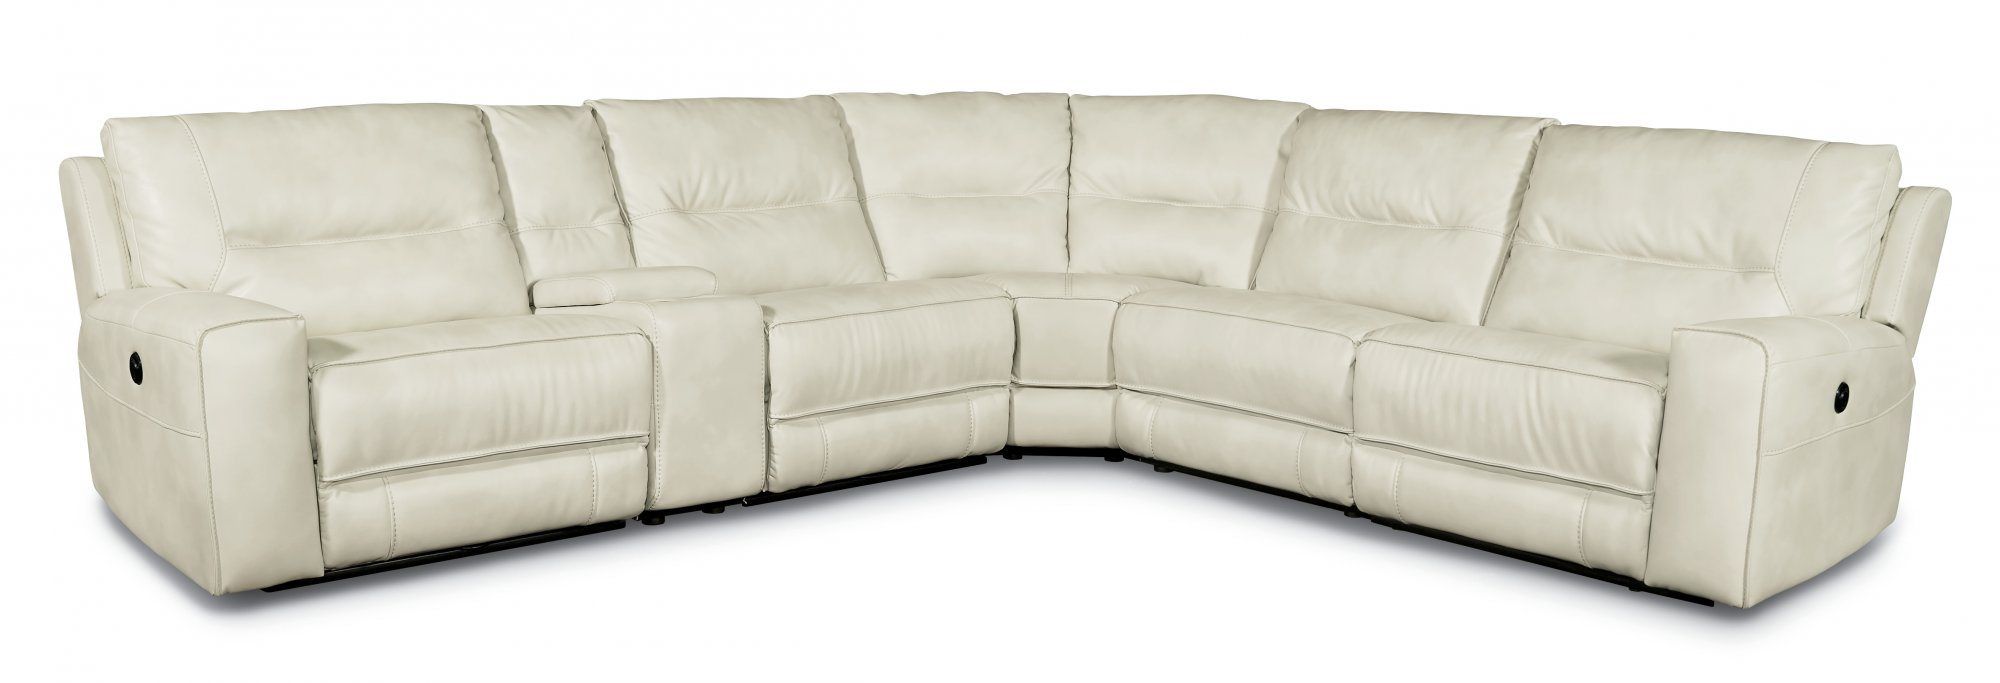 Fabric Power Reclining Sectional  sc 1 st  Flexsteel : reclining sectional - Sectionals, Sofas & Couches